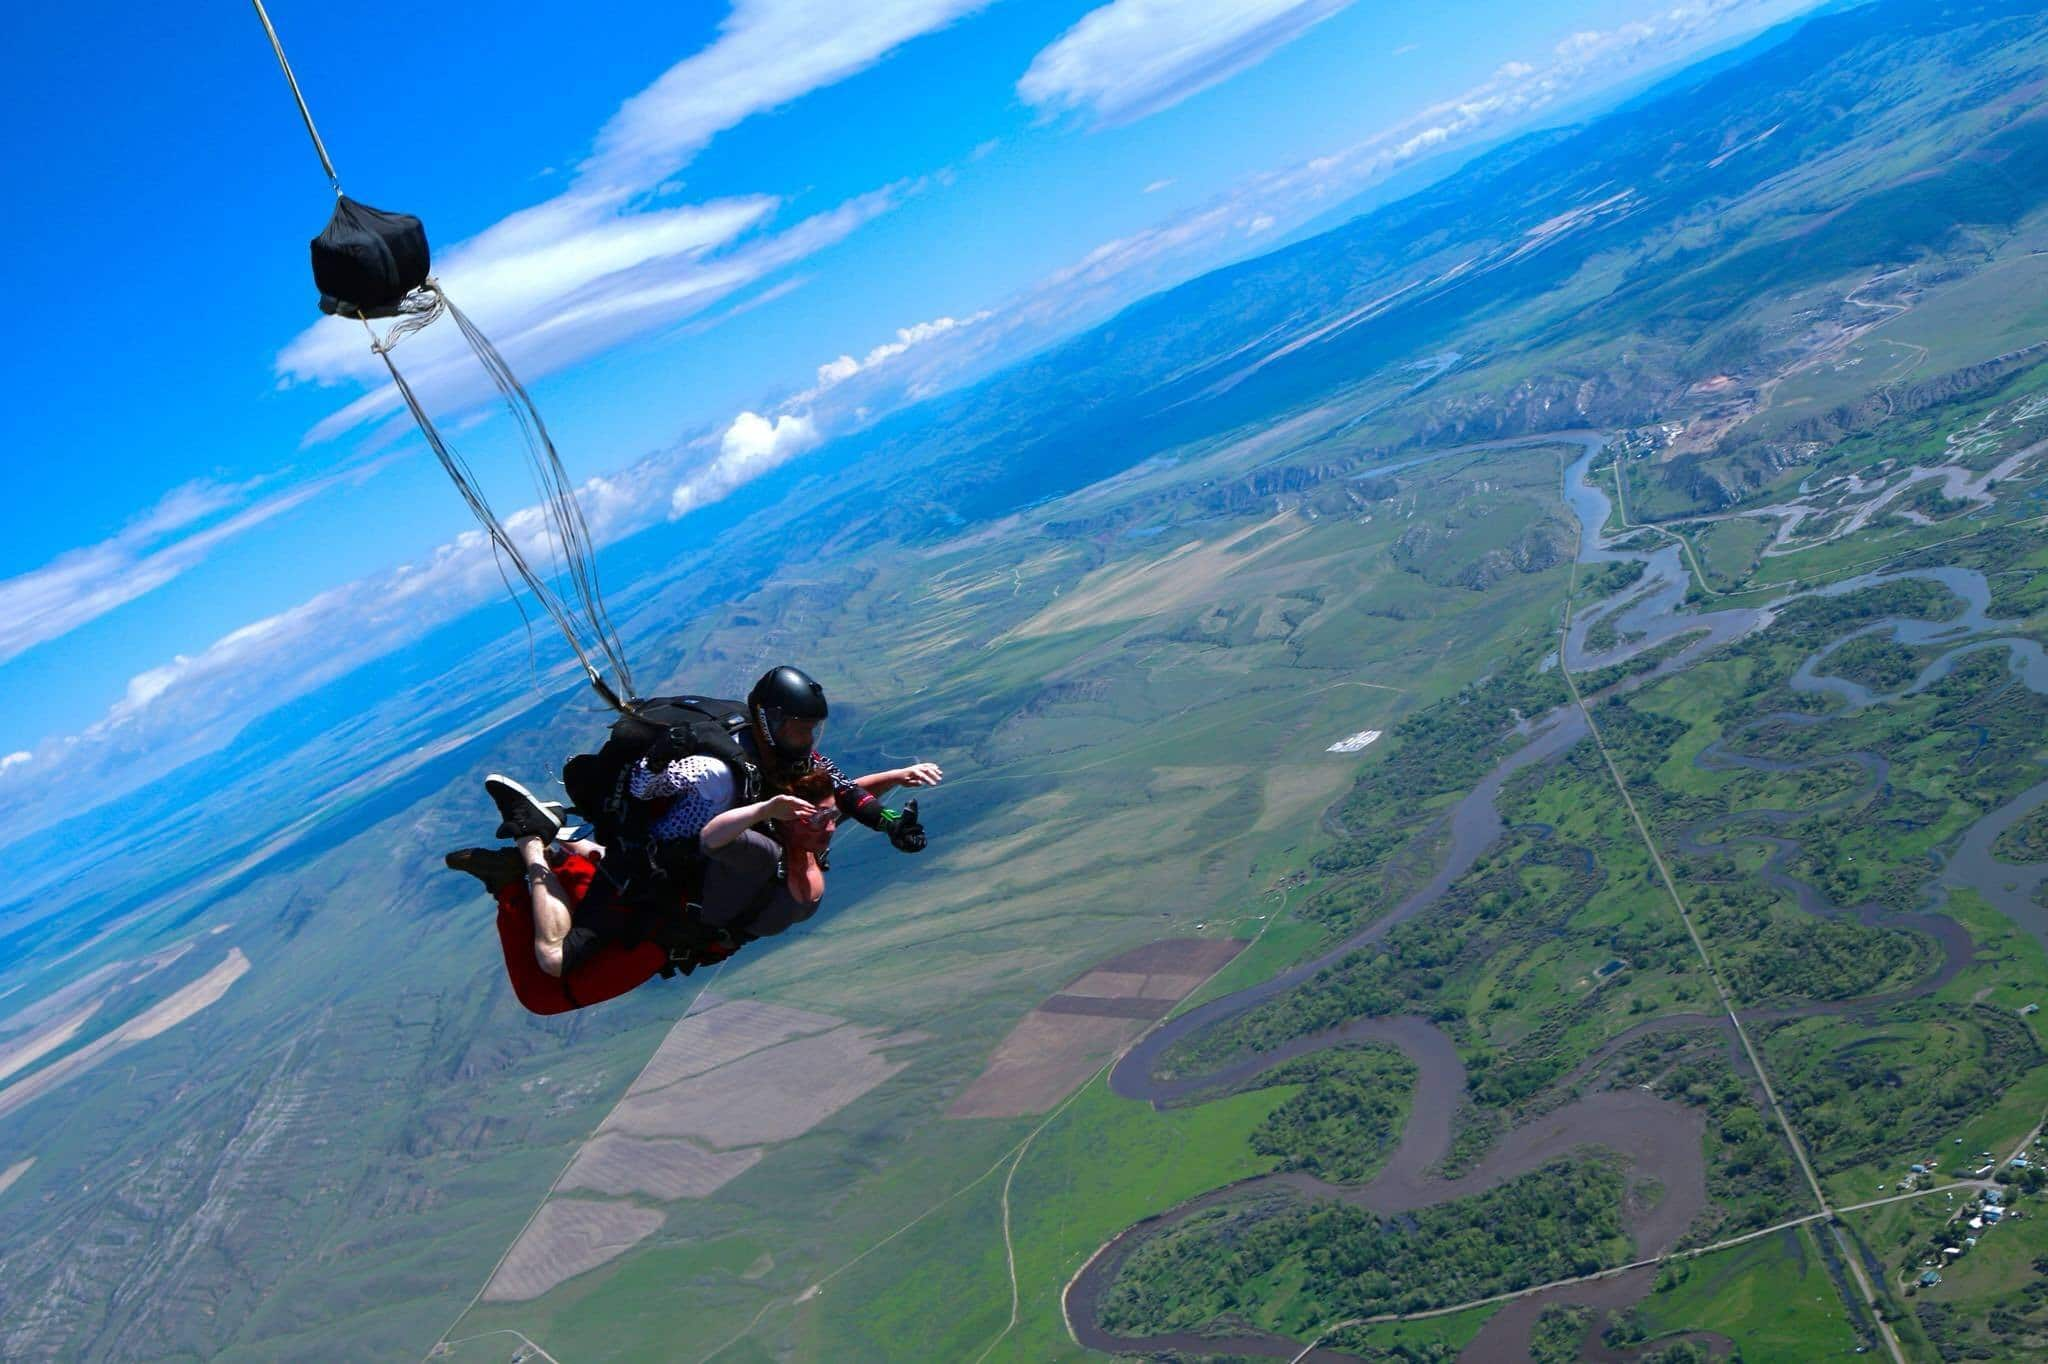 Tandem instructor and female student in freefall above green landscape